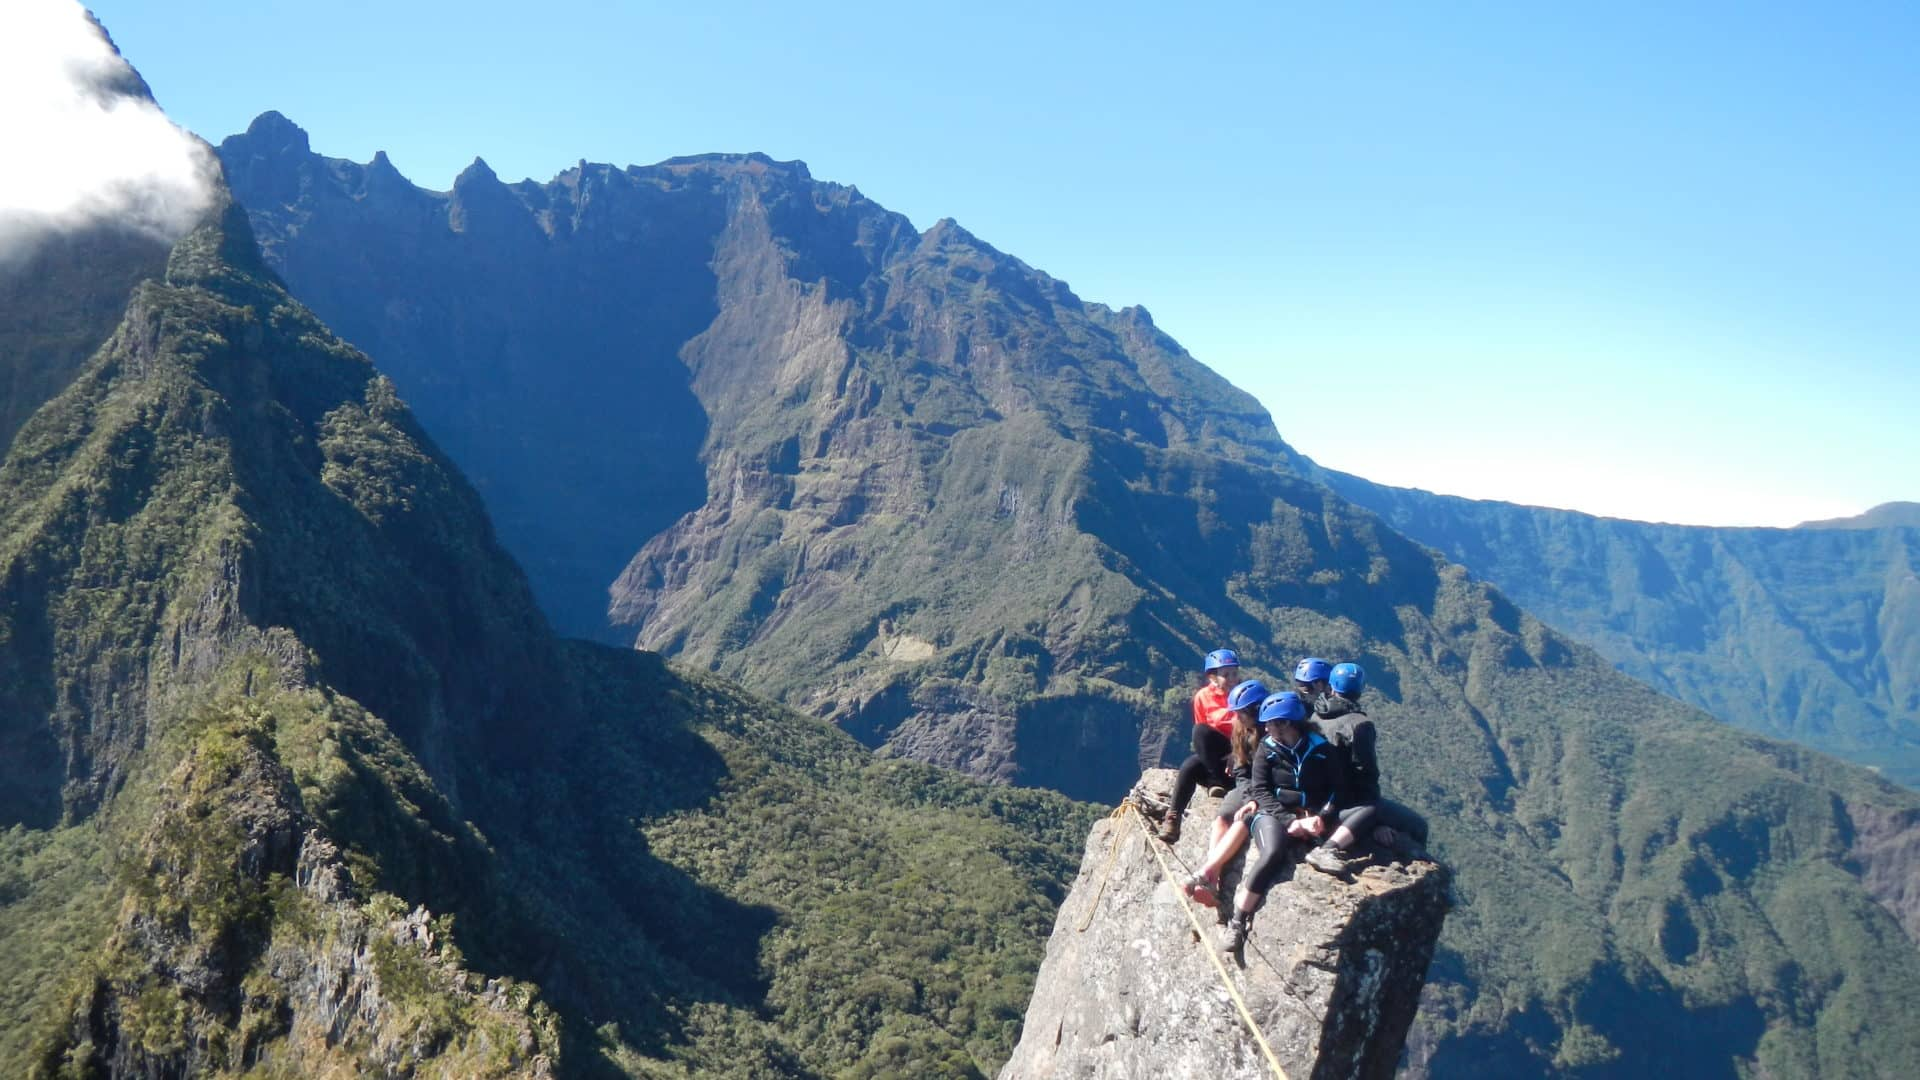 Piton des Neiges Guided Ascent, Reunion Island